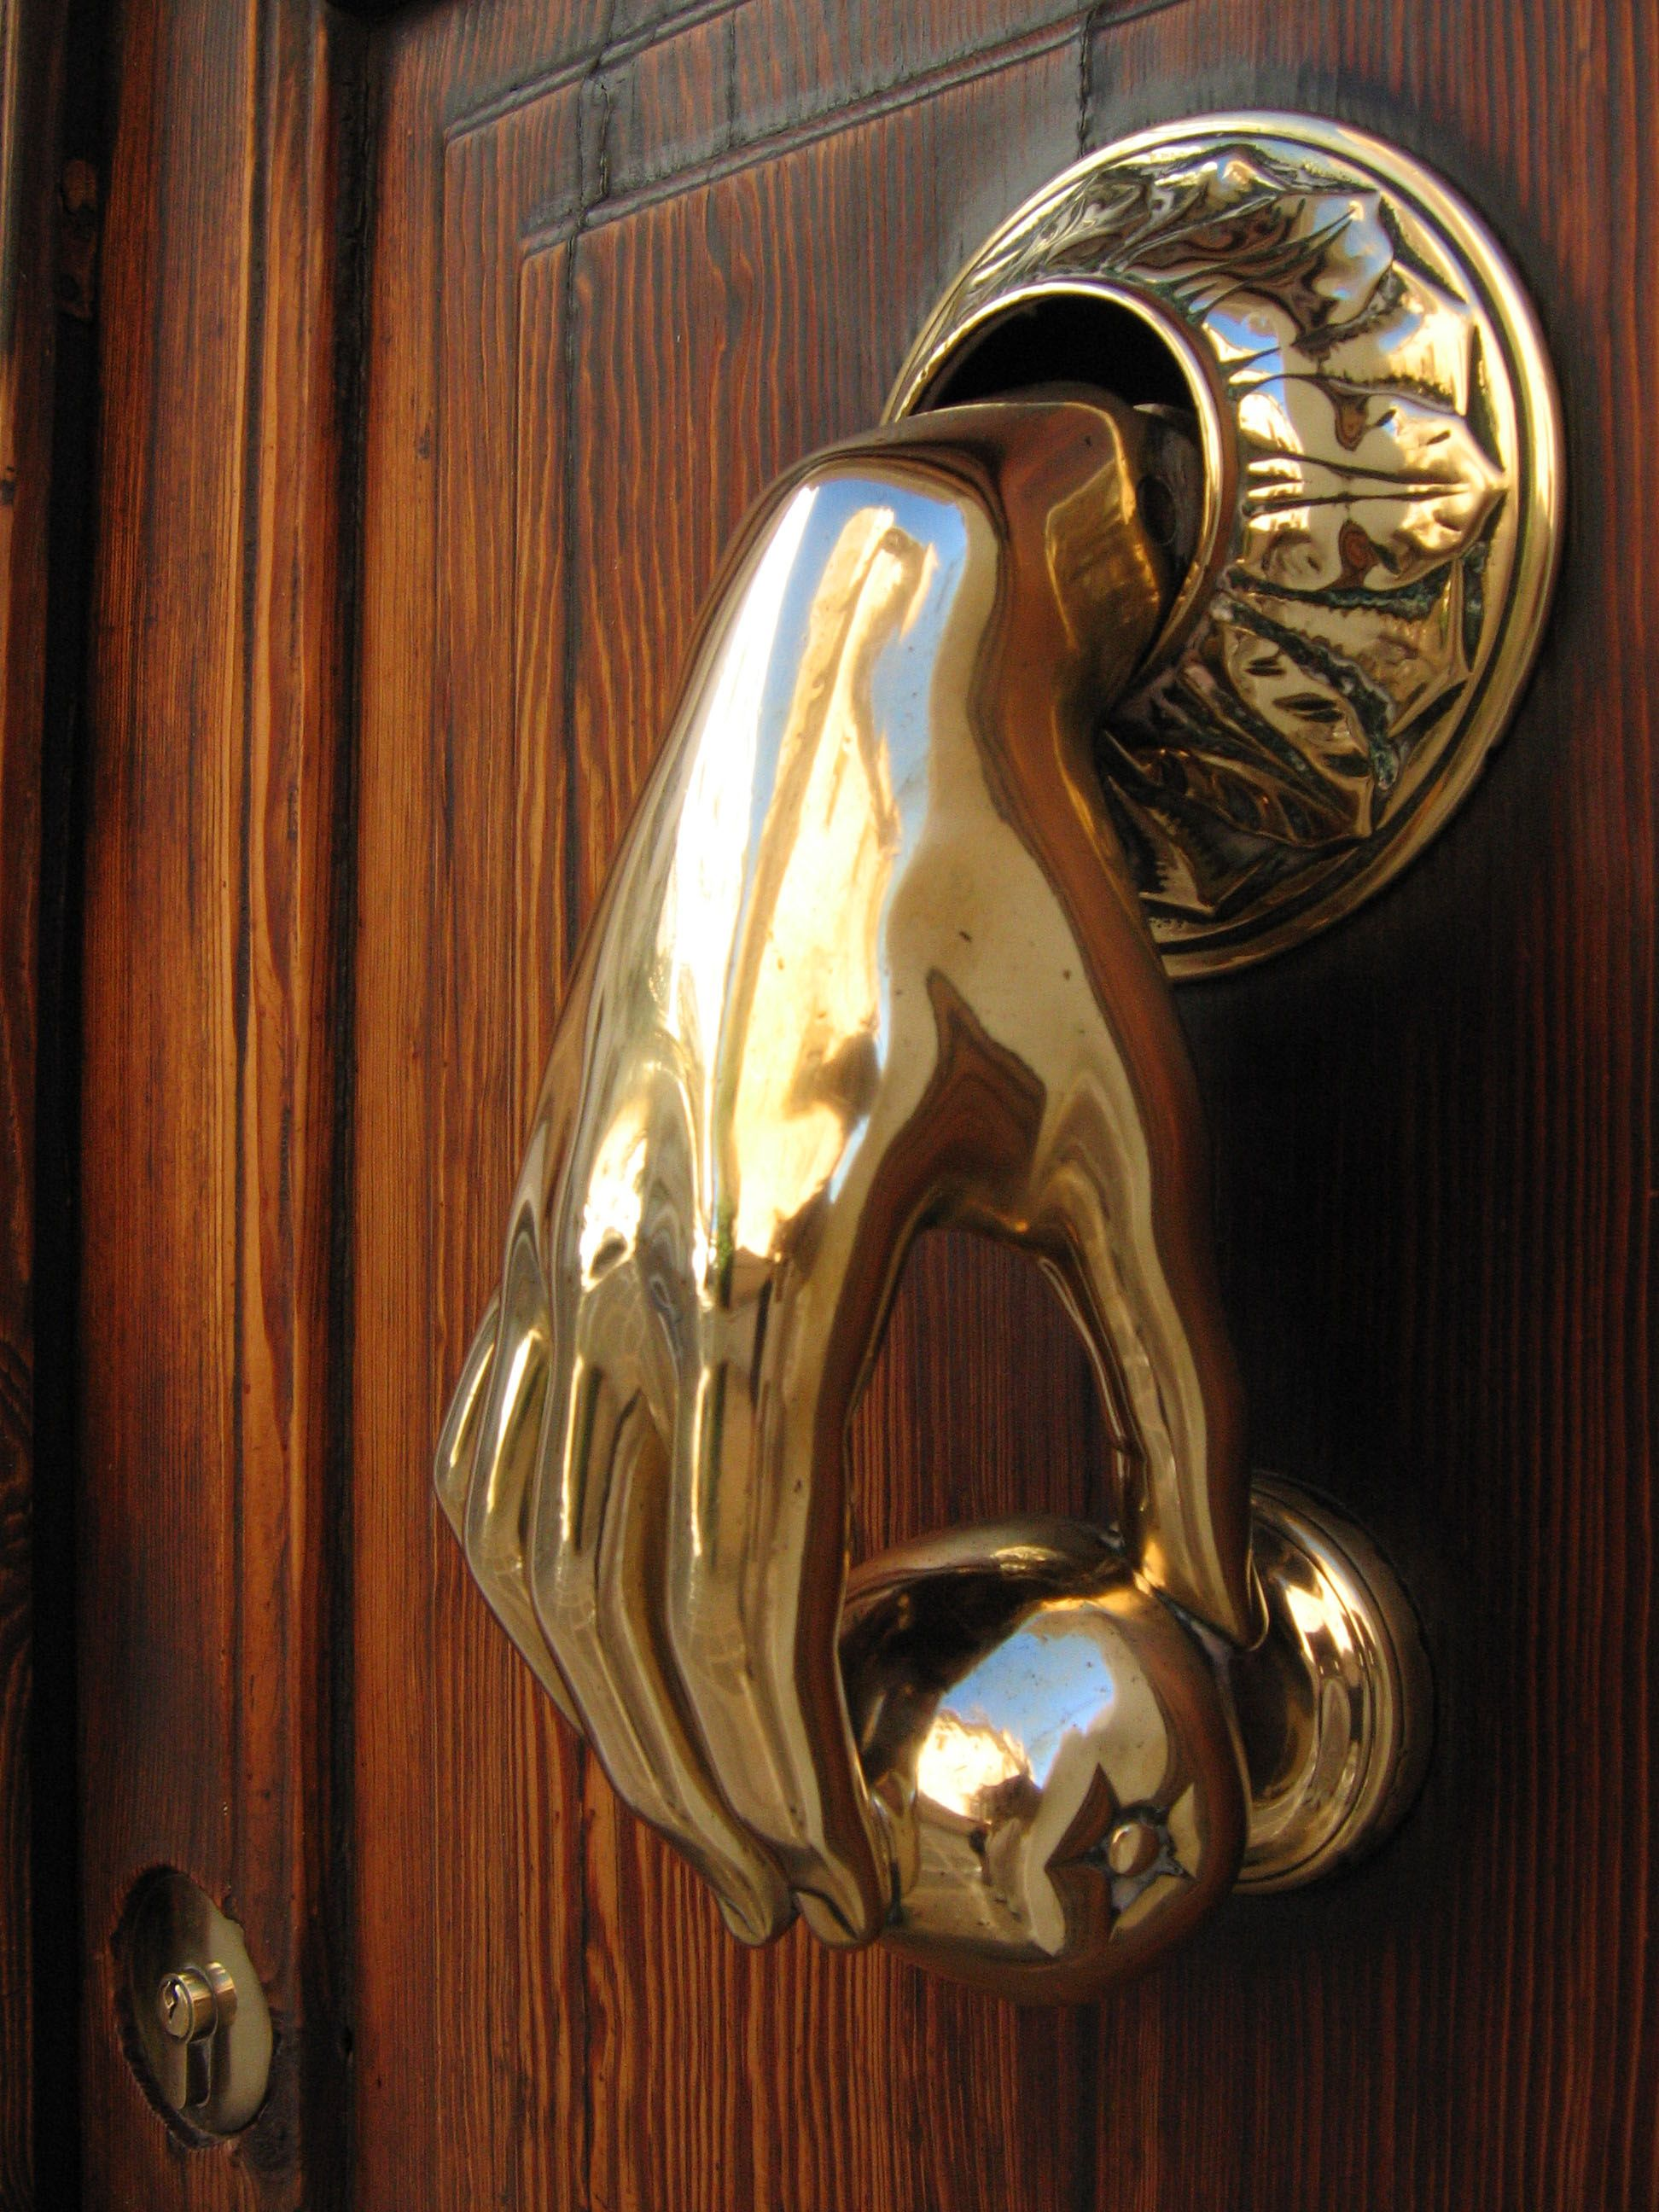 Brass Hand Door Knocker This Will Go Well With The Hand